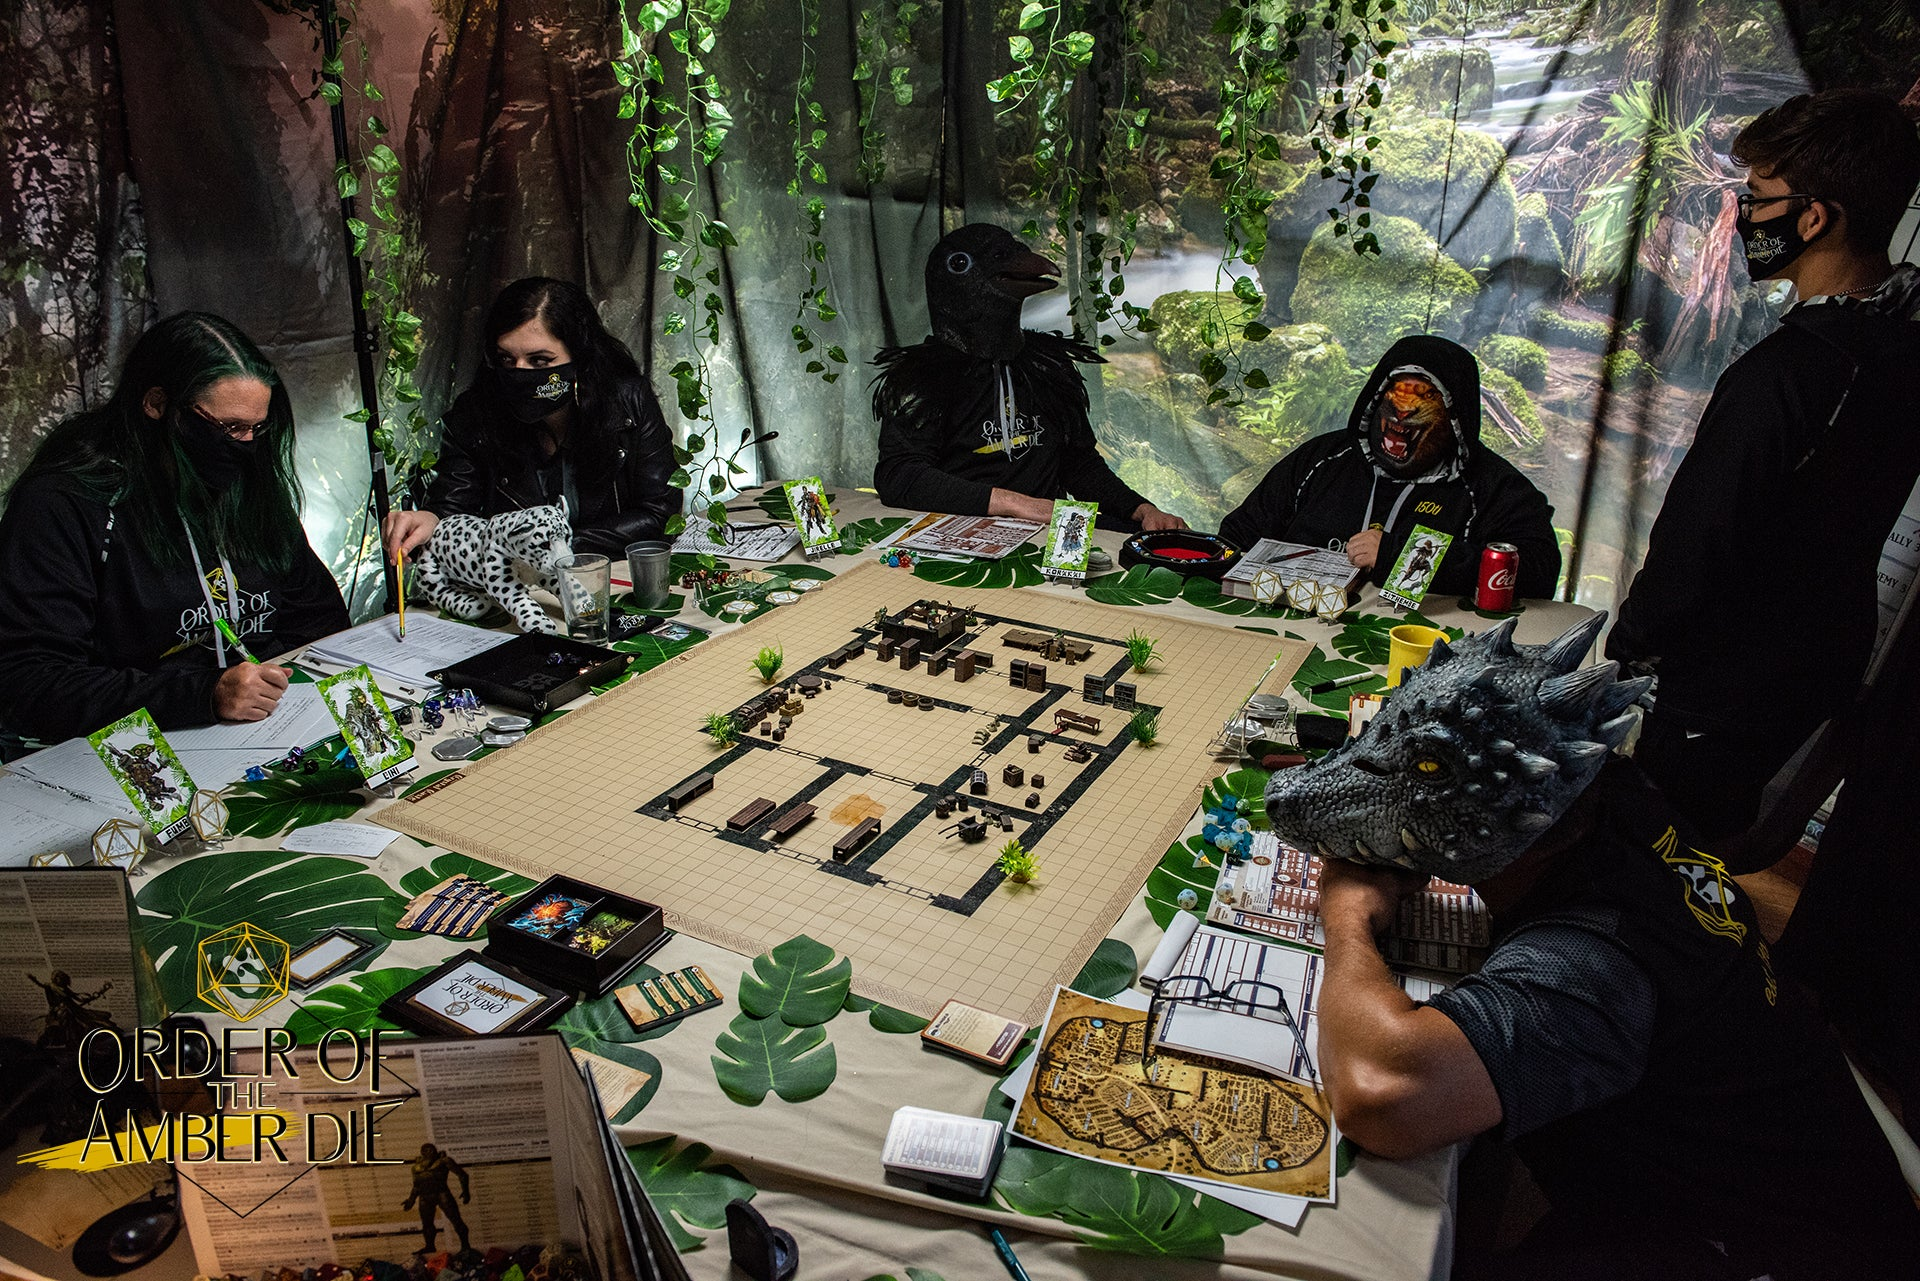 The order of the Amber Die, all wearing masks, sitting around the gaming table